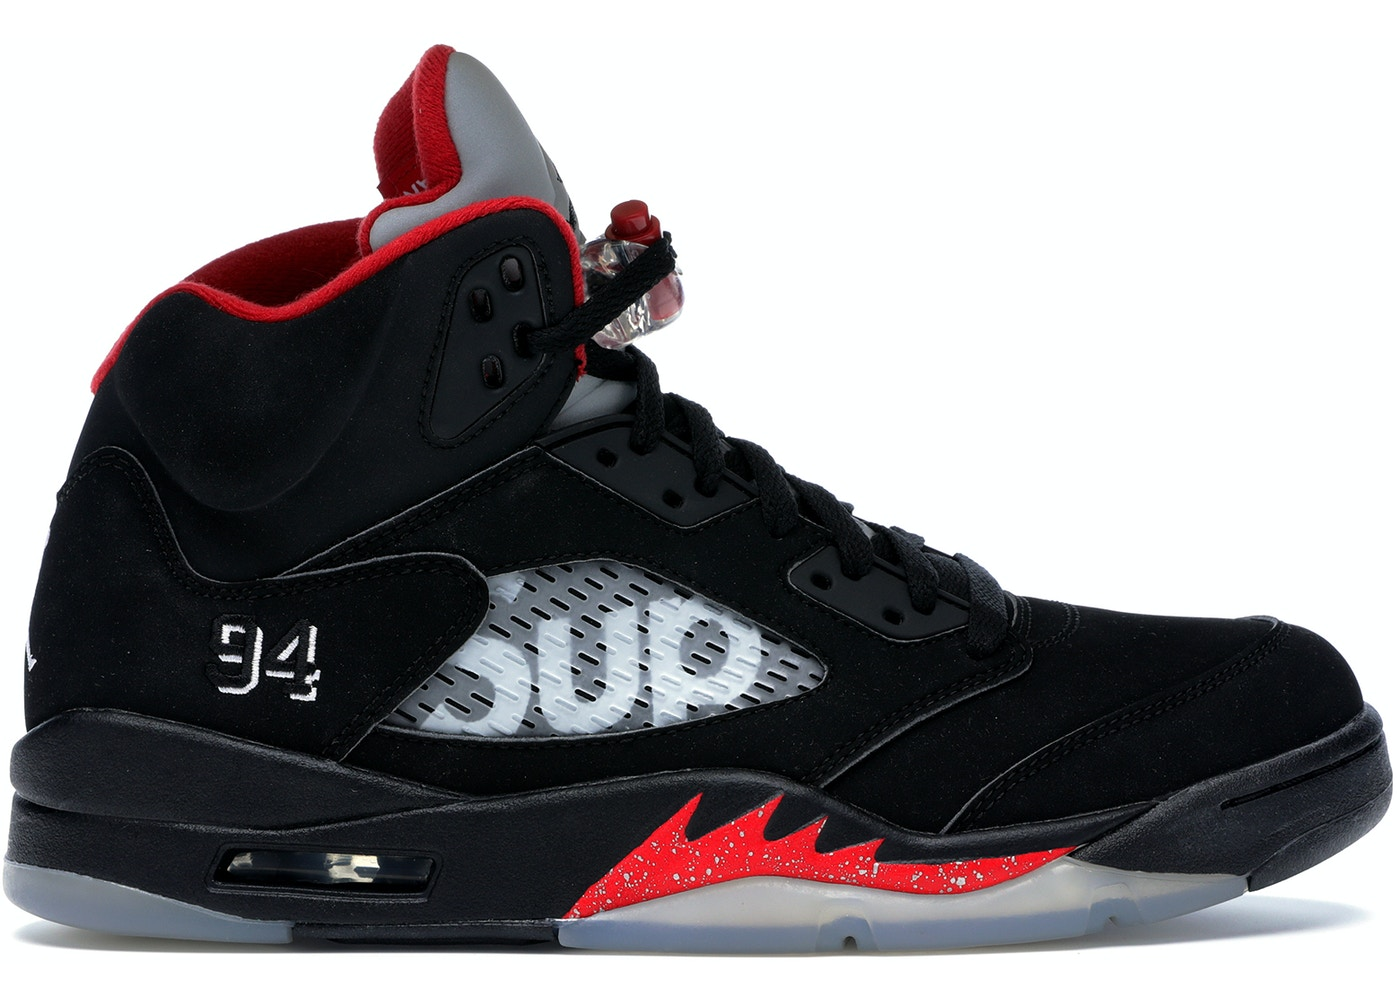 best authentic 326de ec50e Jordan 5 Retro Supreme Black